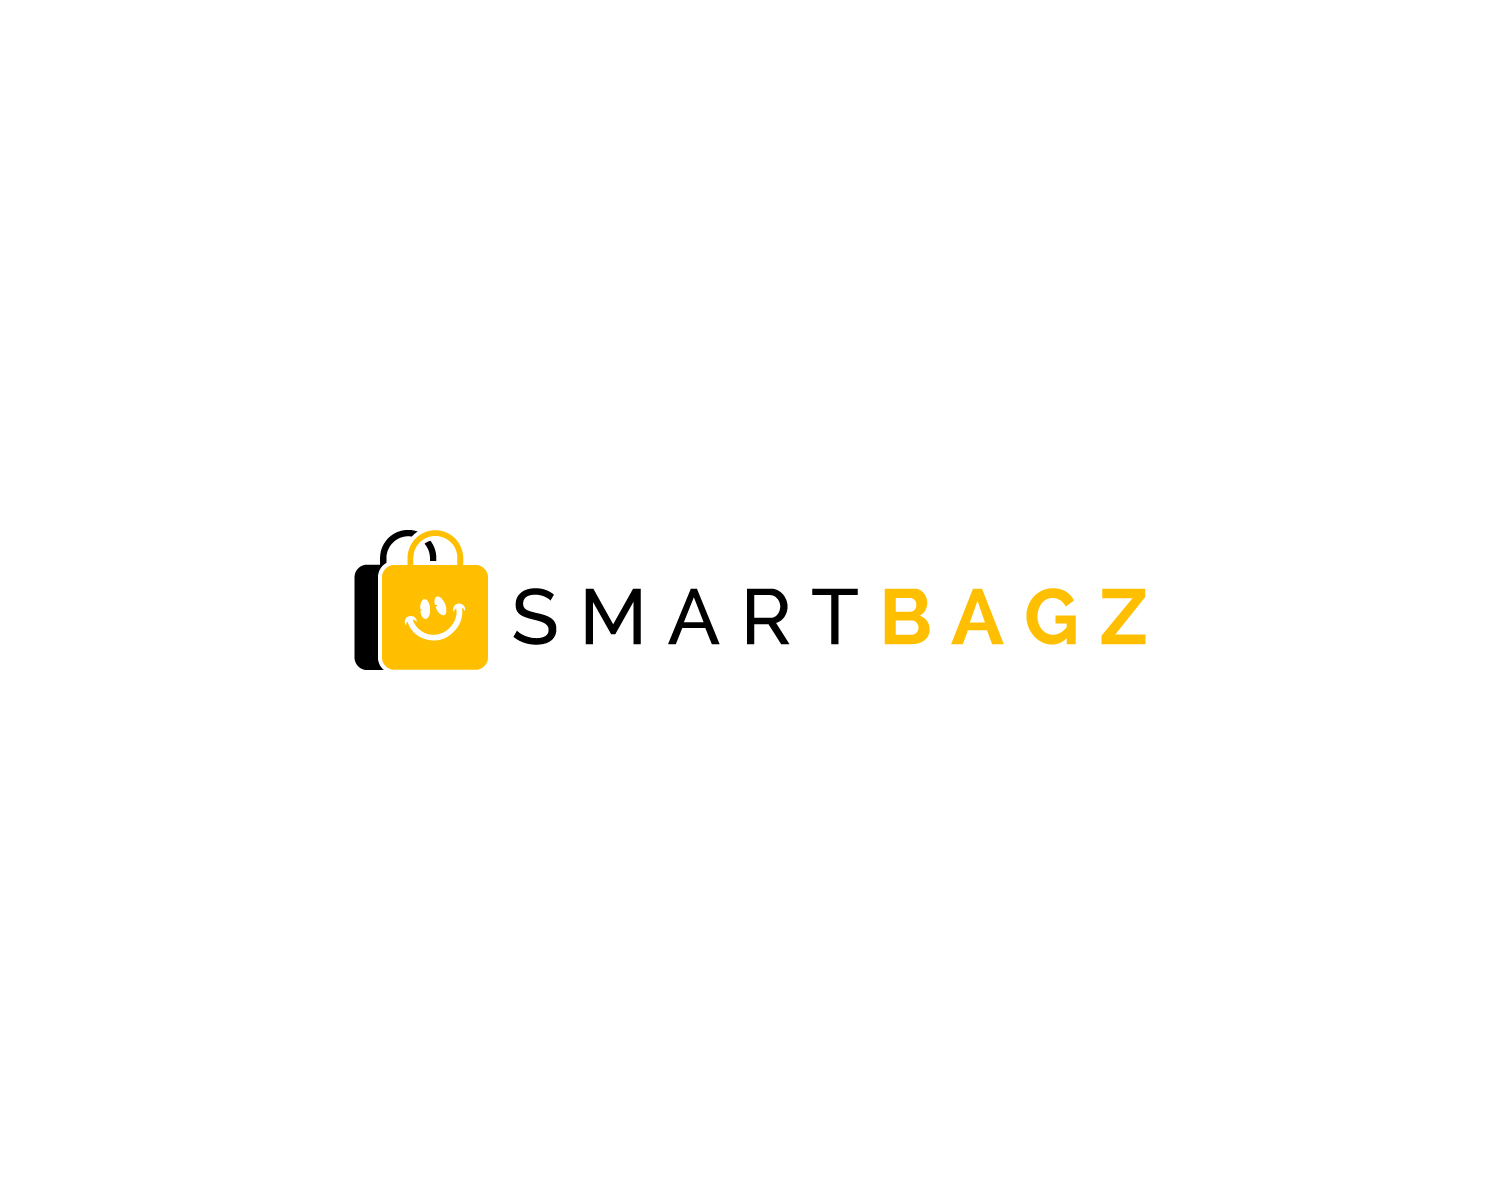 SmartBagz Unlocks Profits for Brands by Helping Them Simplify Product Management and Digital Marketing